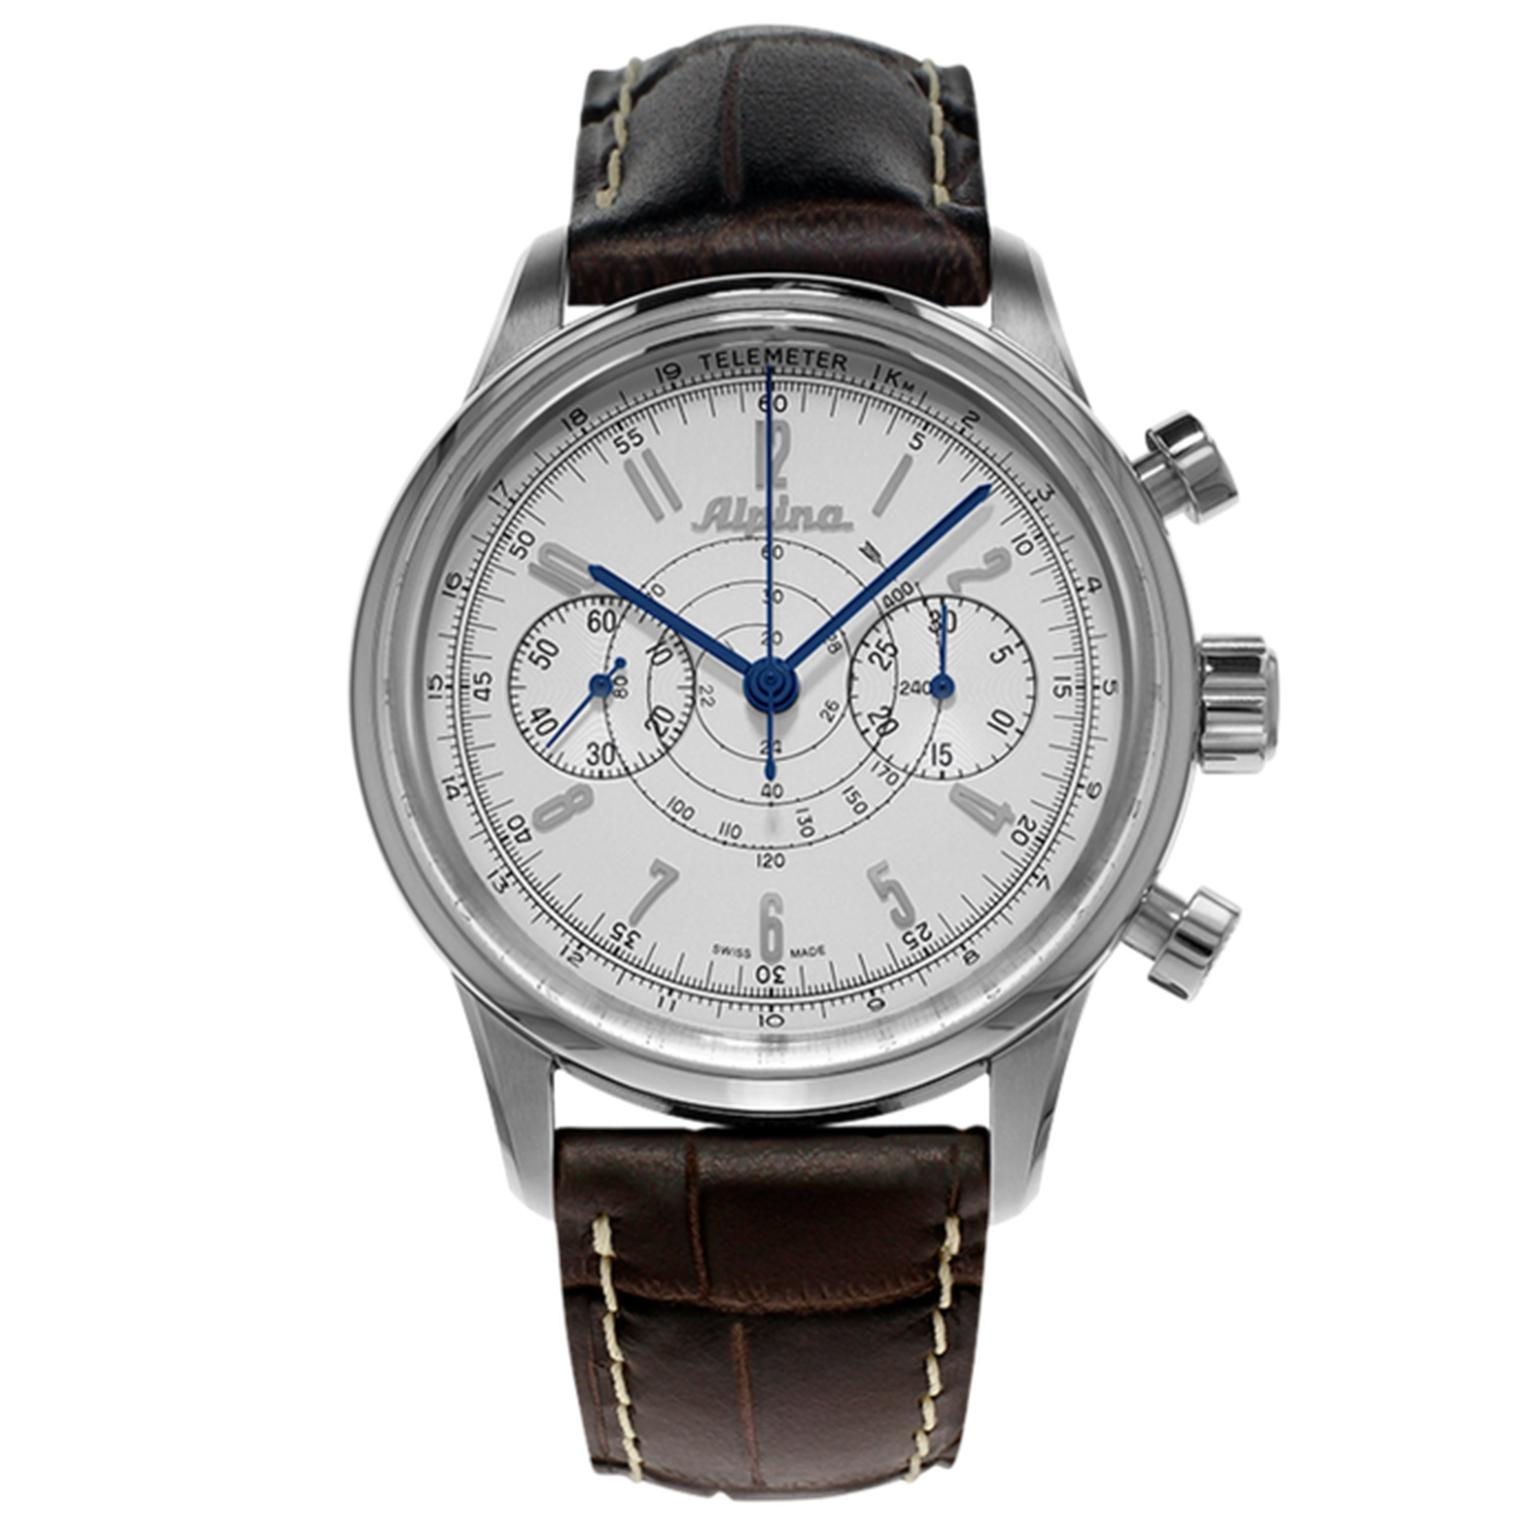 Alpina's vintage-style 130 Heritage Pilot Chronograph features a bi-compax layout complemented with telemetre and tachymetre scales marking it as a professional aviation companion (£2,100).